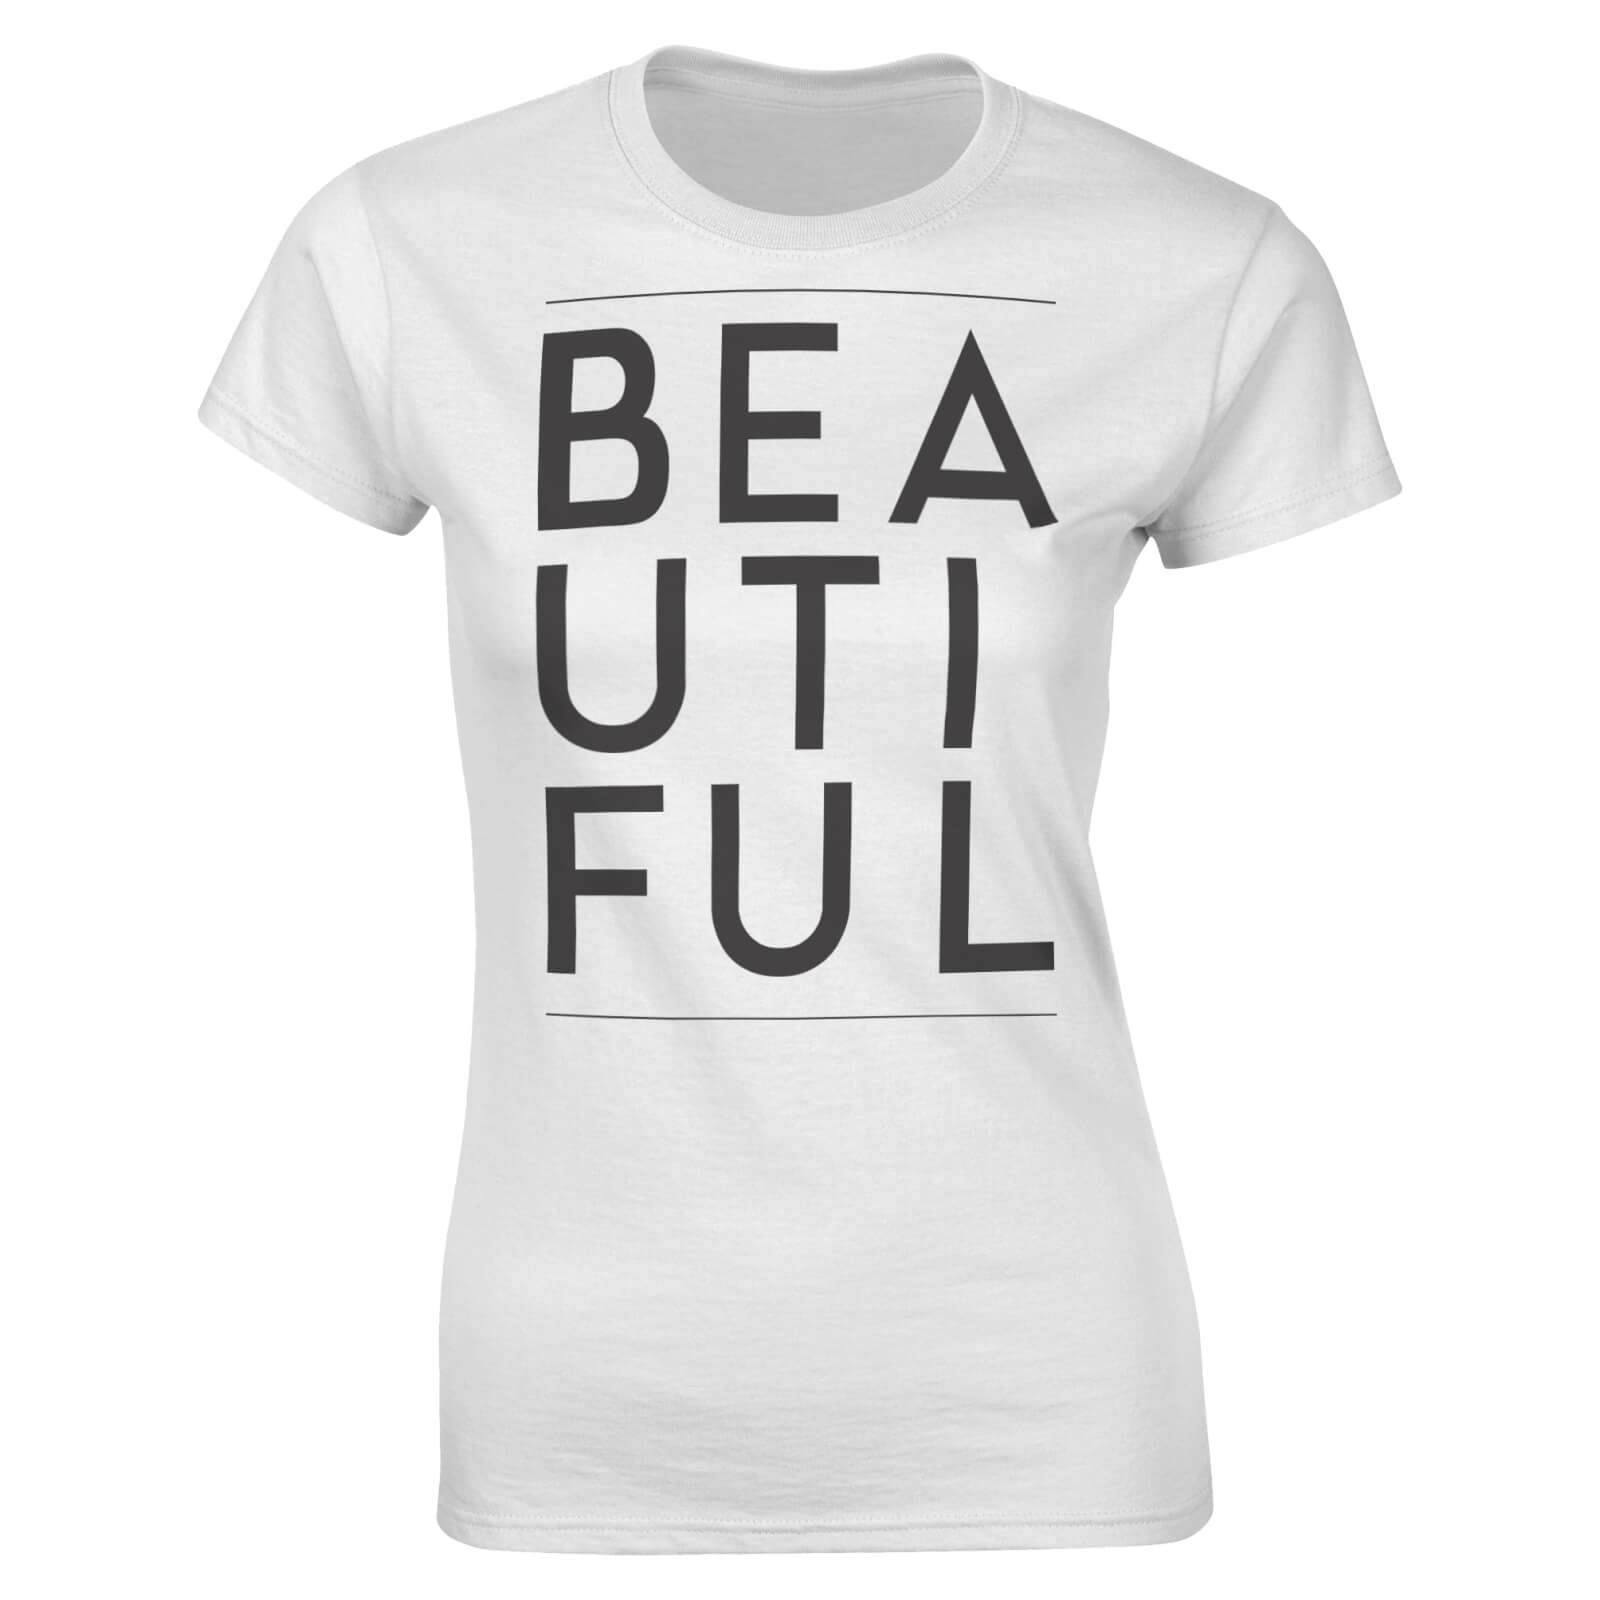 The Valentines Collection Beautiful Women's T-Shirt - White - S - White